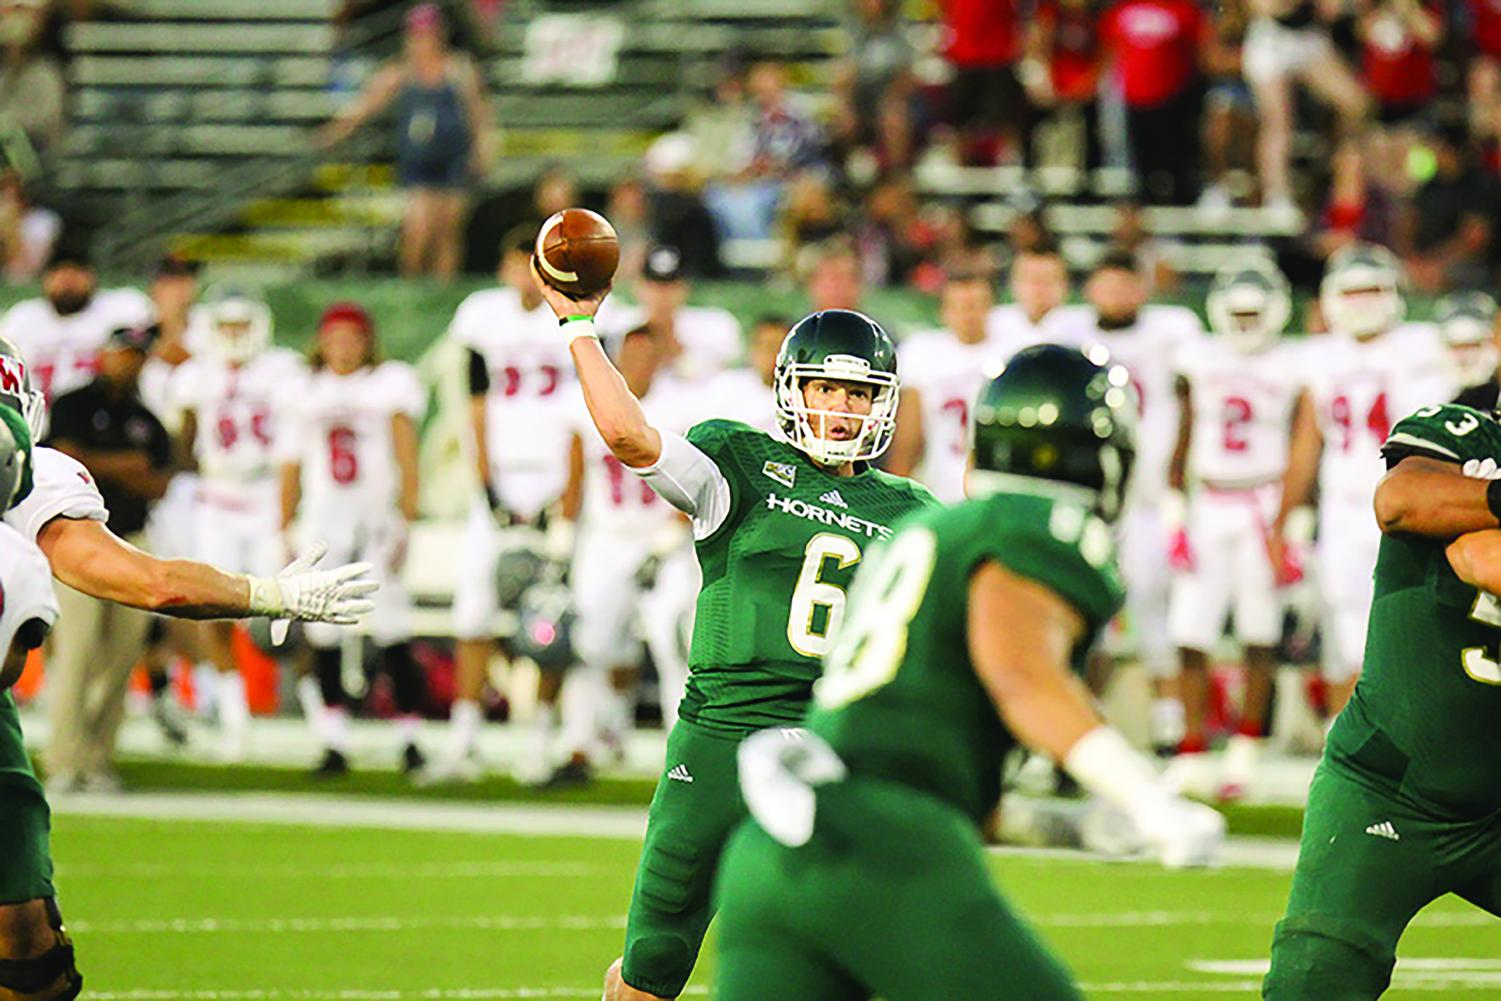 Sophomore Nate Ketteringham throws the ball against Western Oregon, Sept. 3, 2016. Ketteringham is one of many football players that transferred from Sac State soon after Jody Sears took over as head coach.